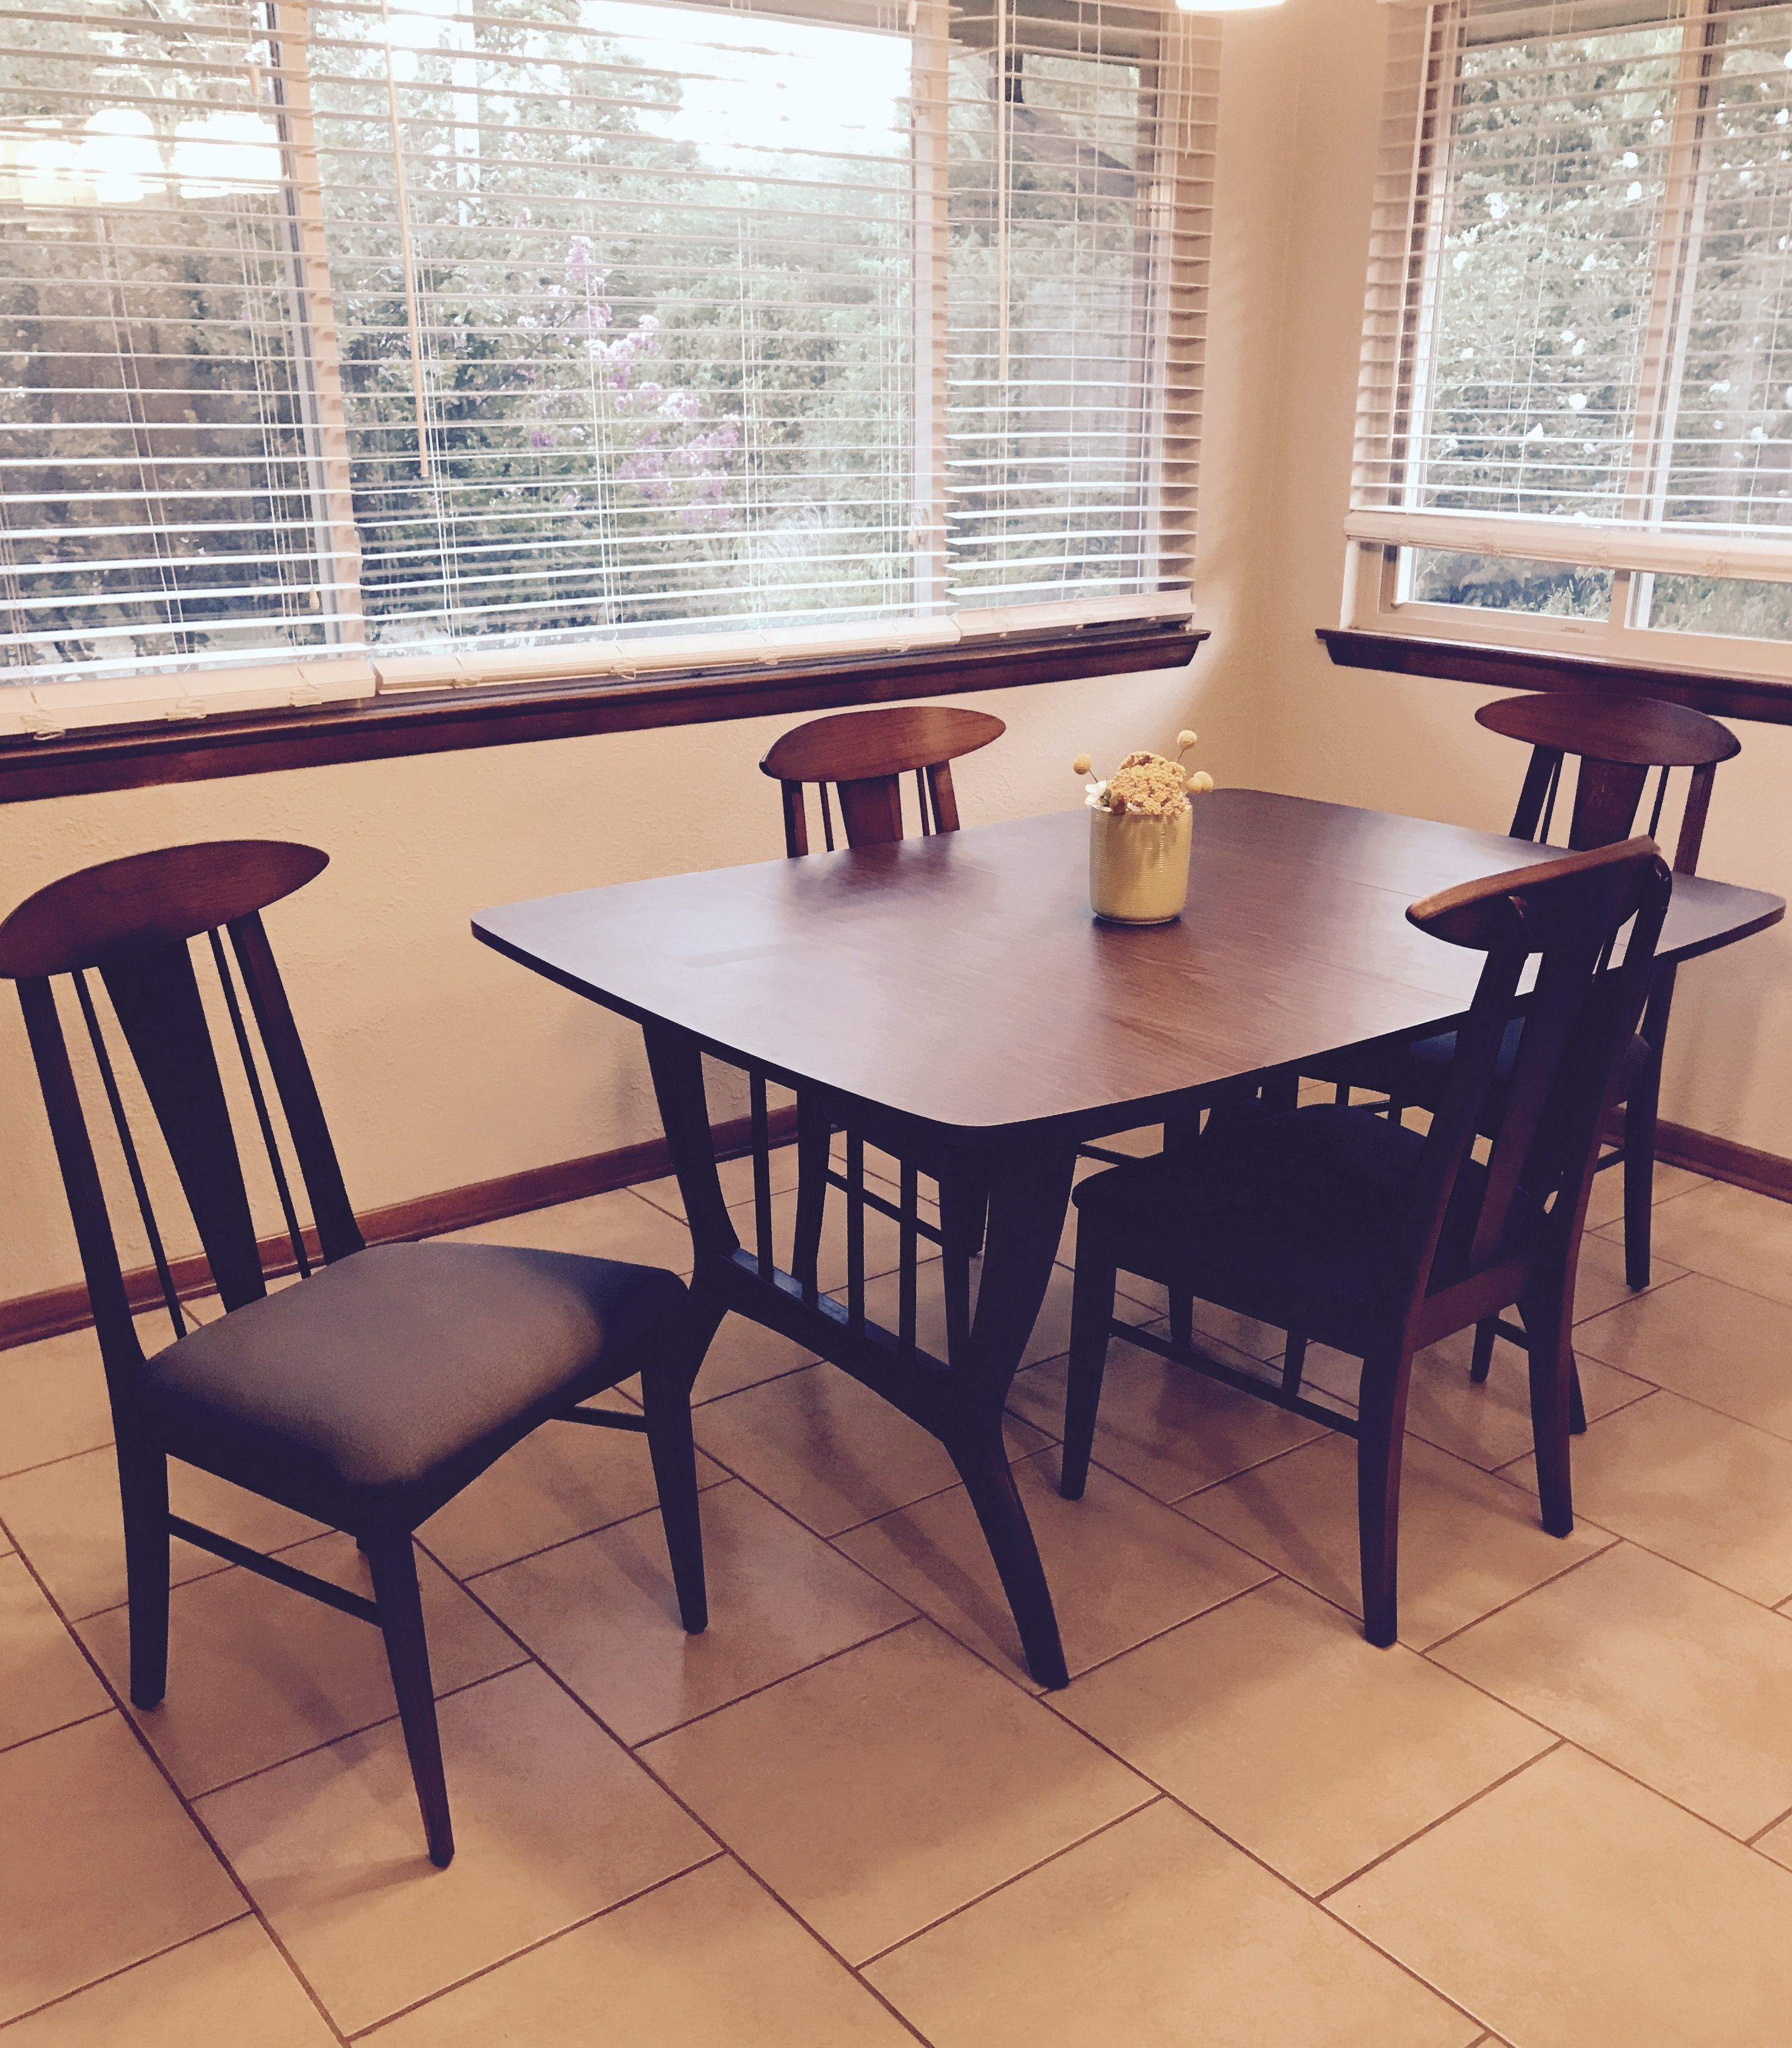 Mid Century Modern Dining Table And Chairs 1960 S Atomic Age Made